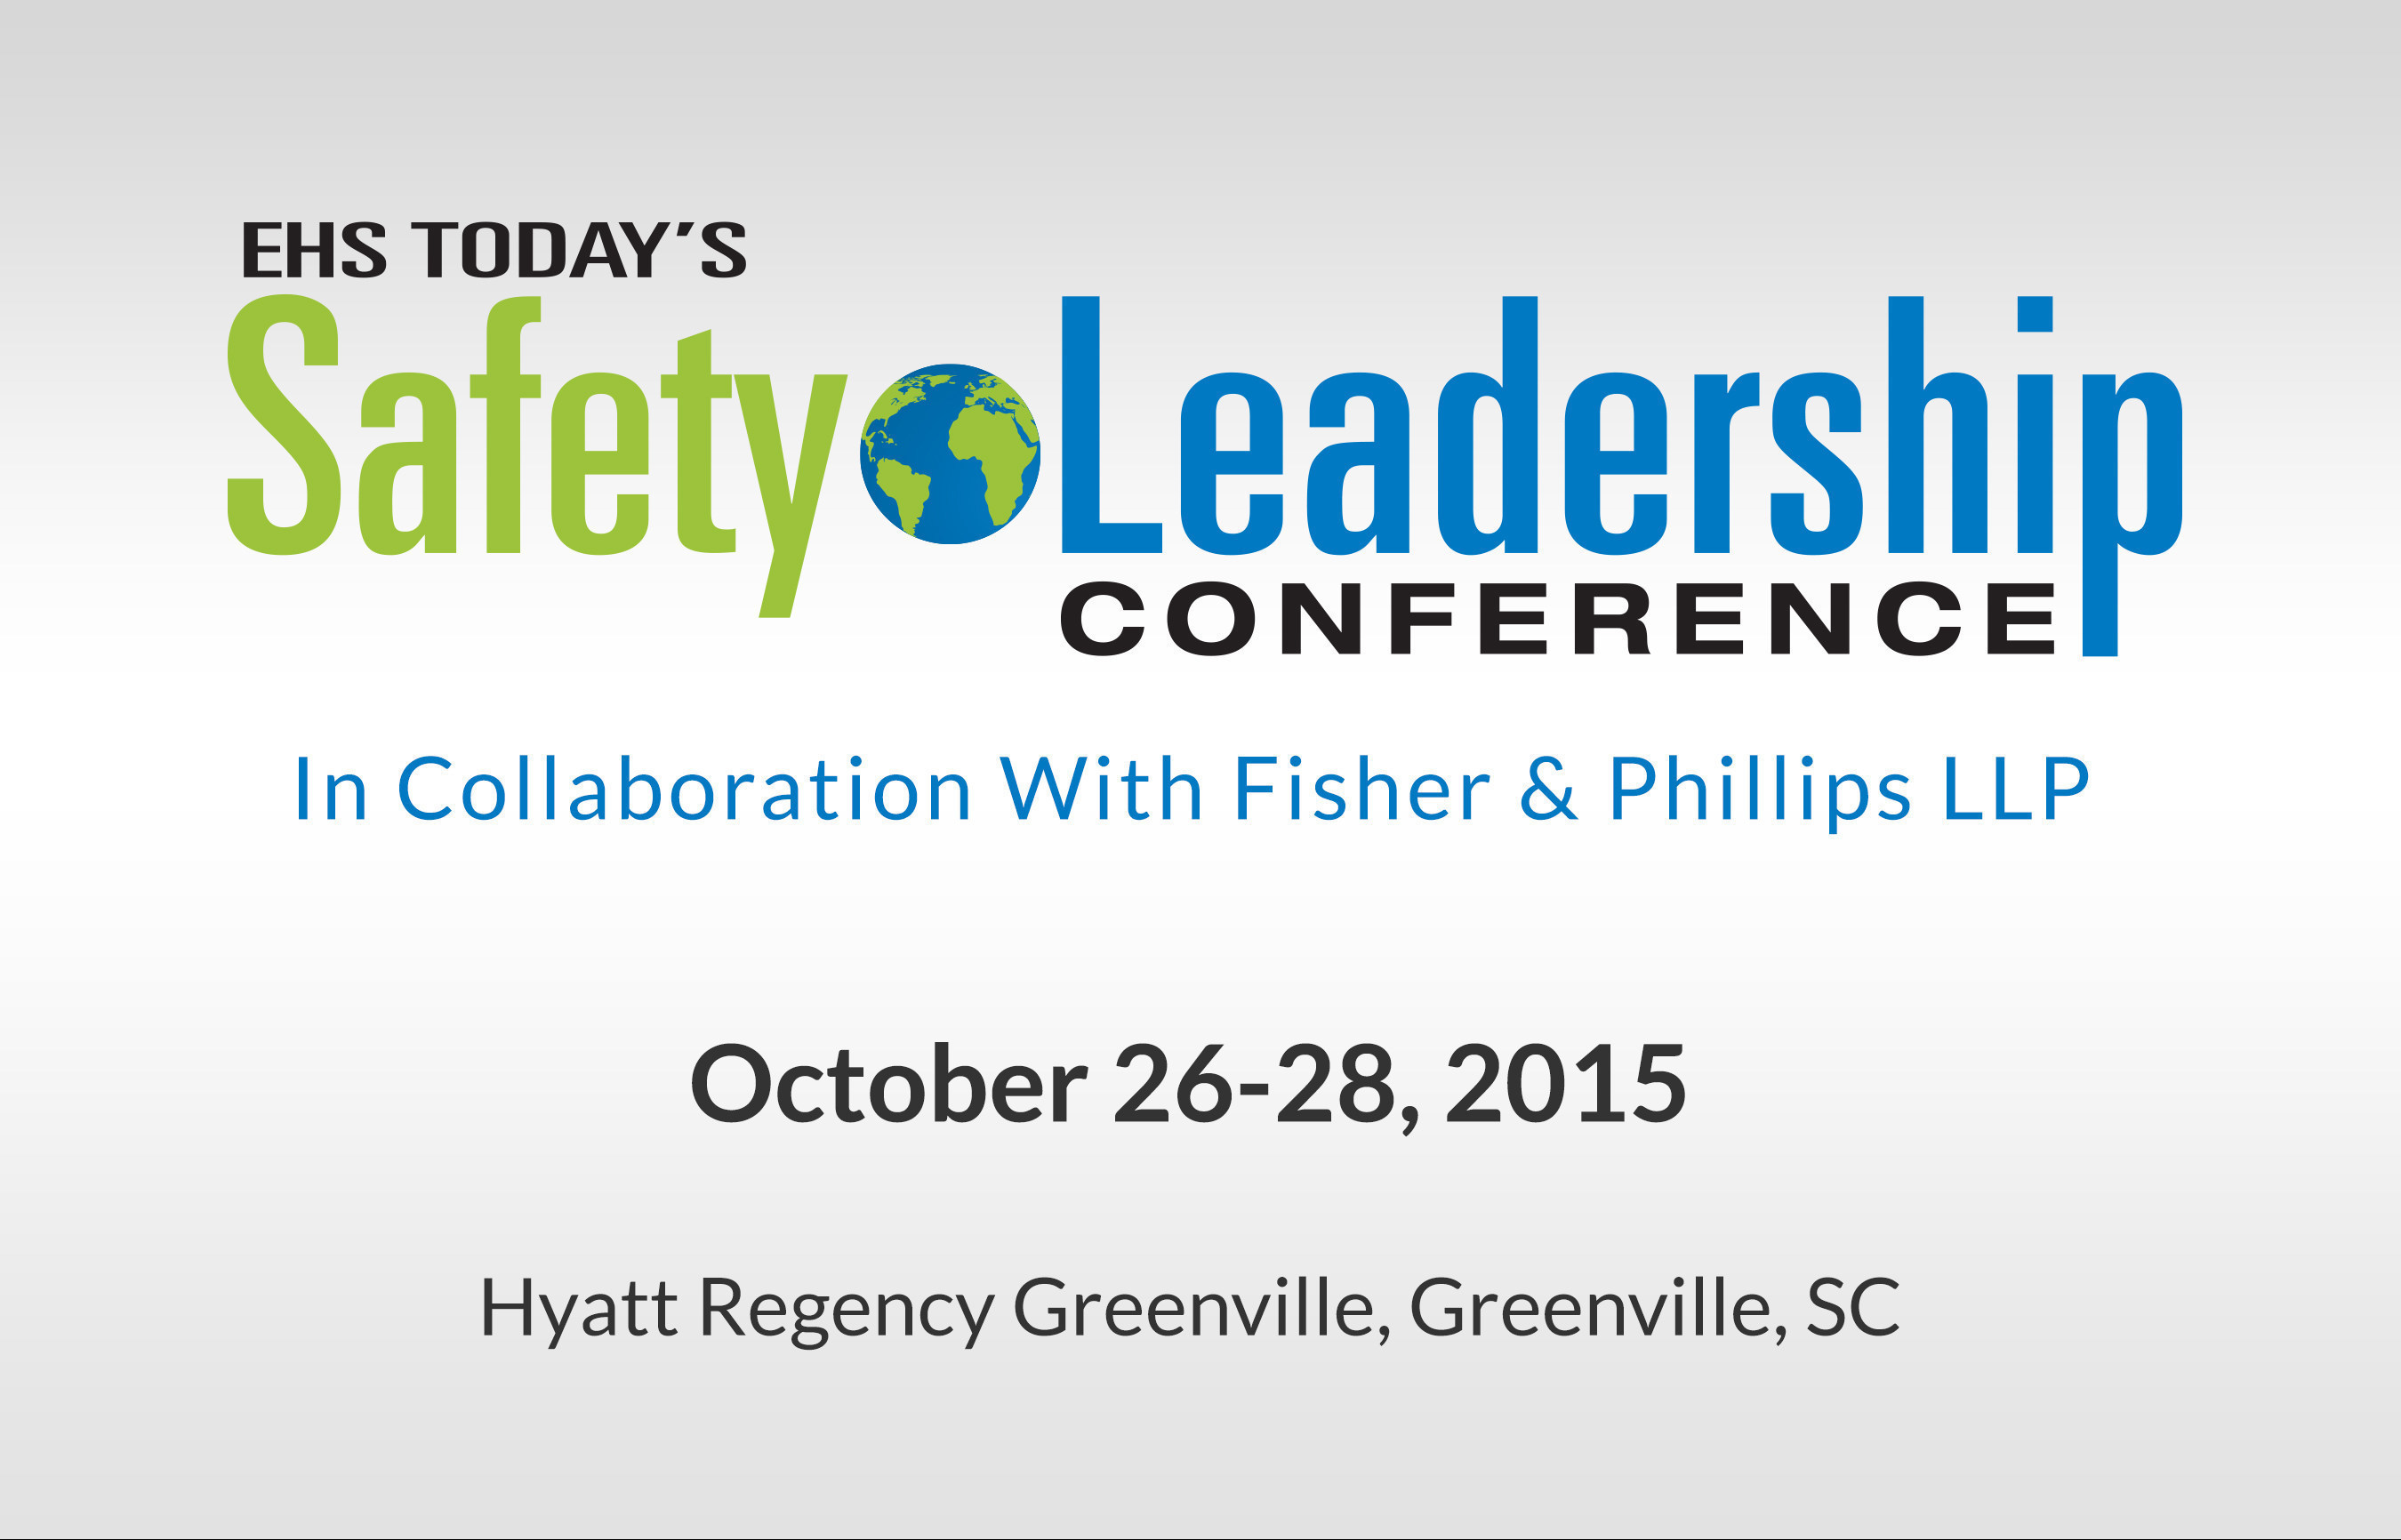 Learn How to Create a World-Class Safety Excellence Culture at Penton's 2015 EHS Today Safety